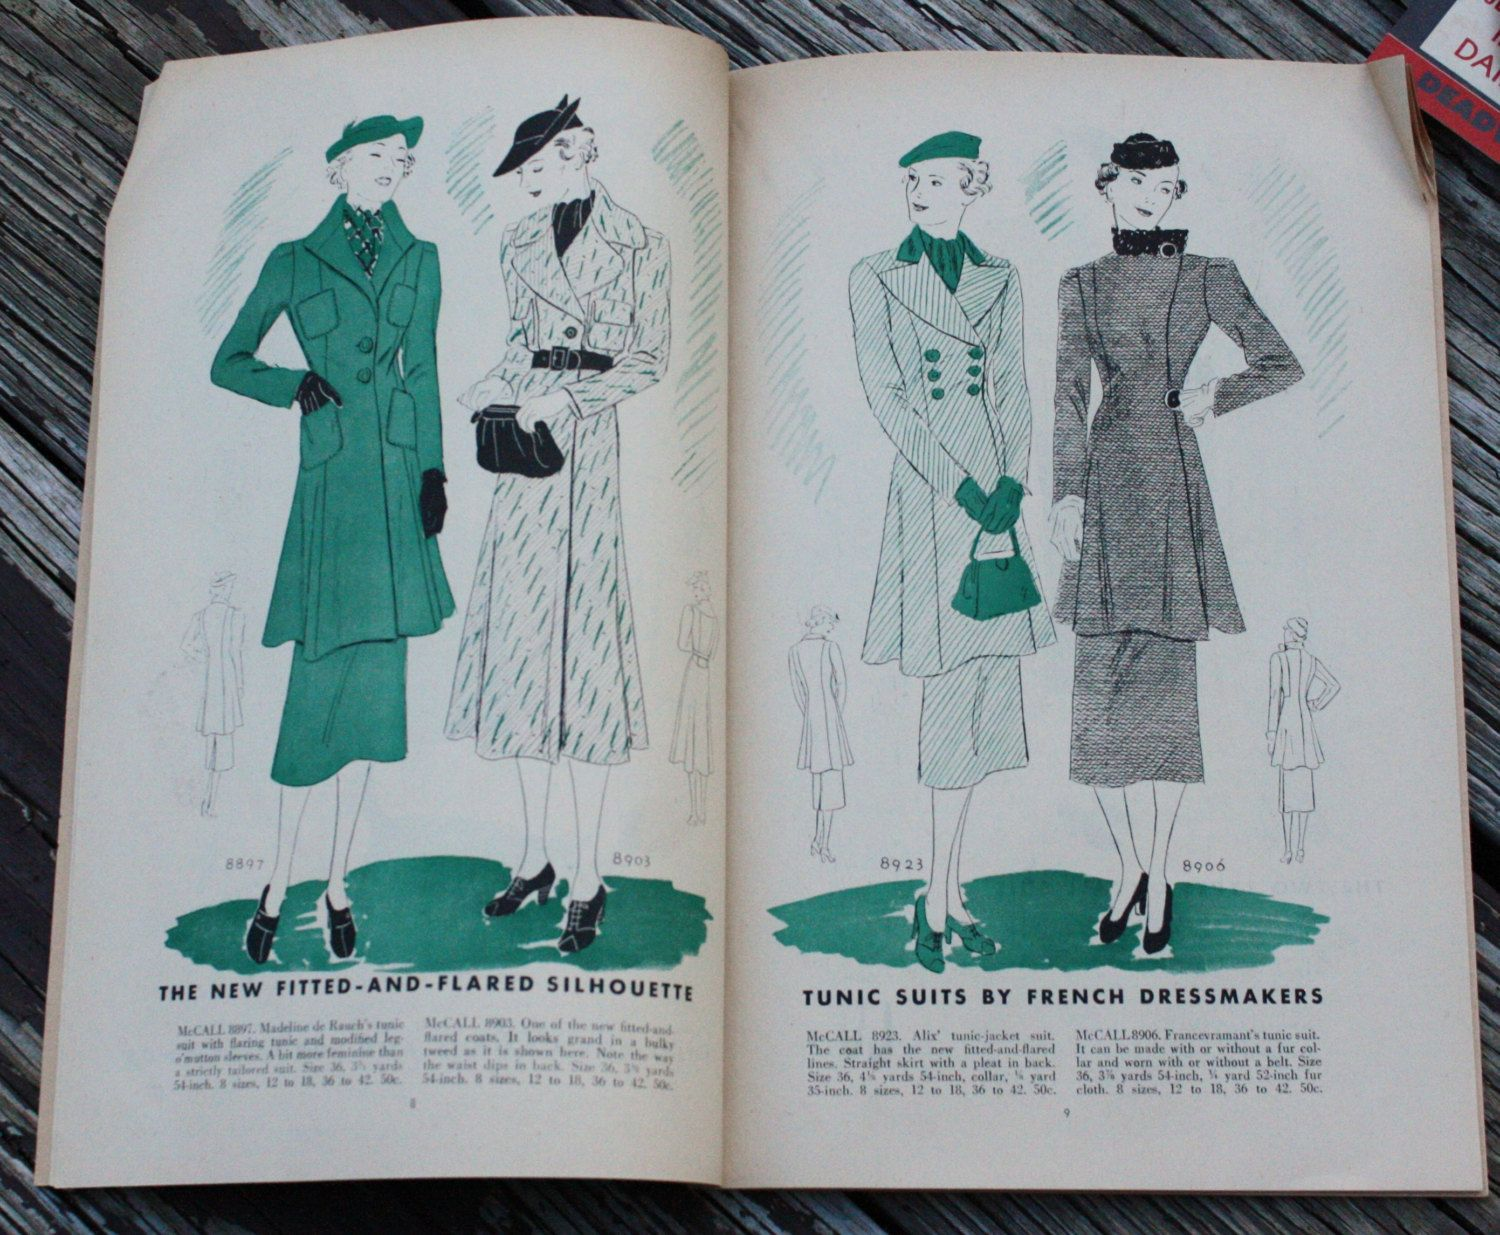 McCall Style News, September 1936 featuring McCall 8897 (after Madeleine de Rauch), 8903, 8923 (after Alix) and 8906 (after Francesvramant)